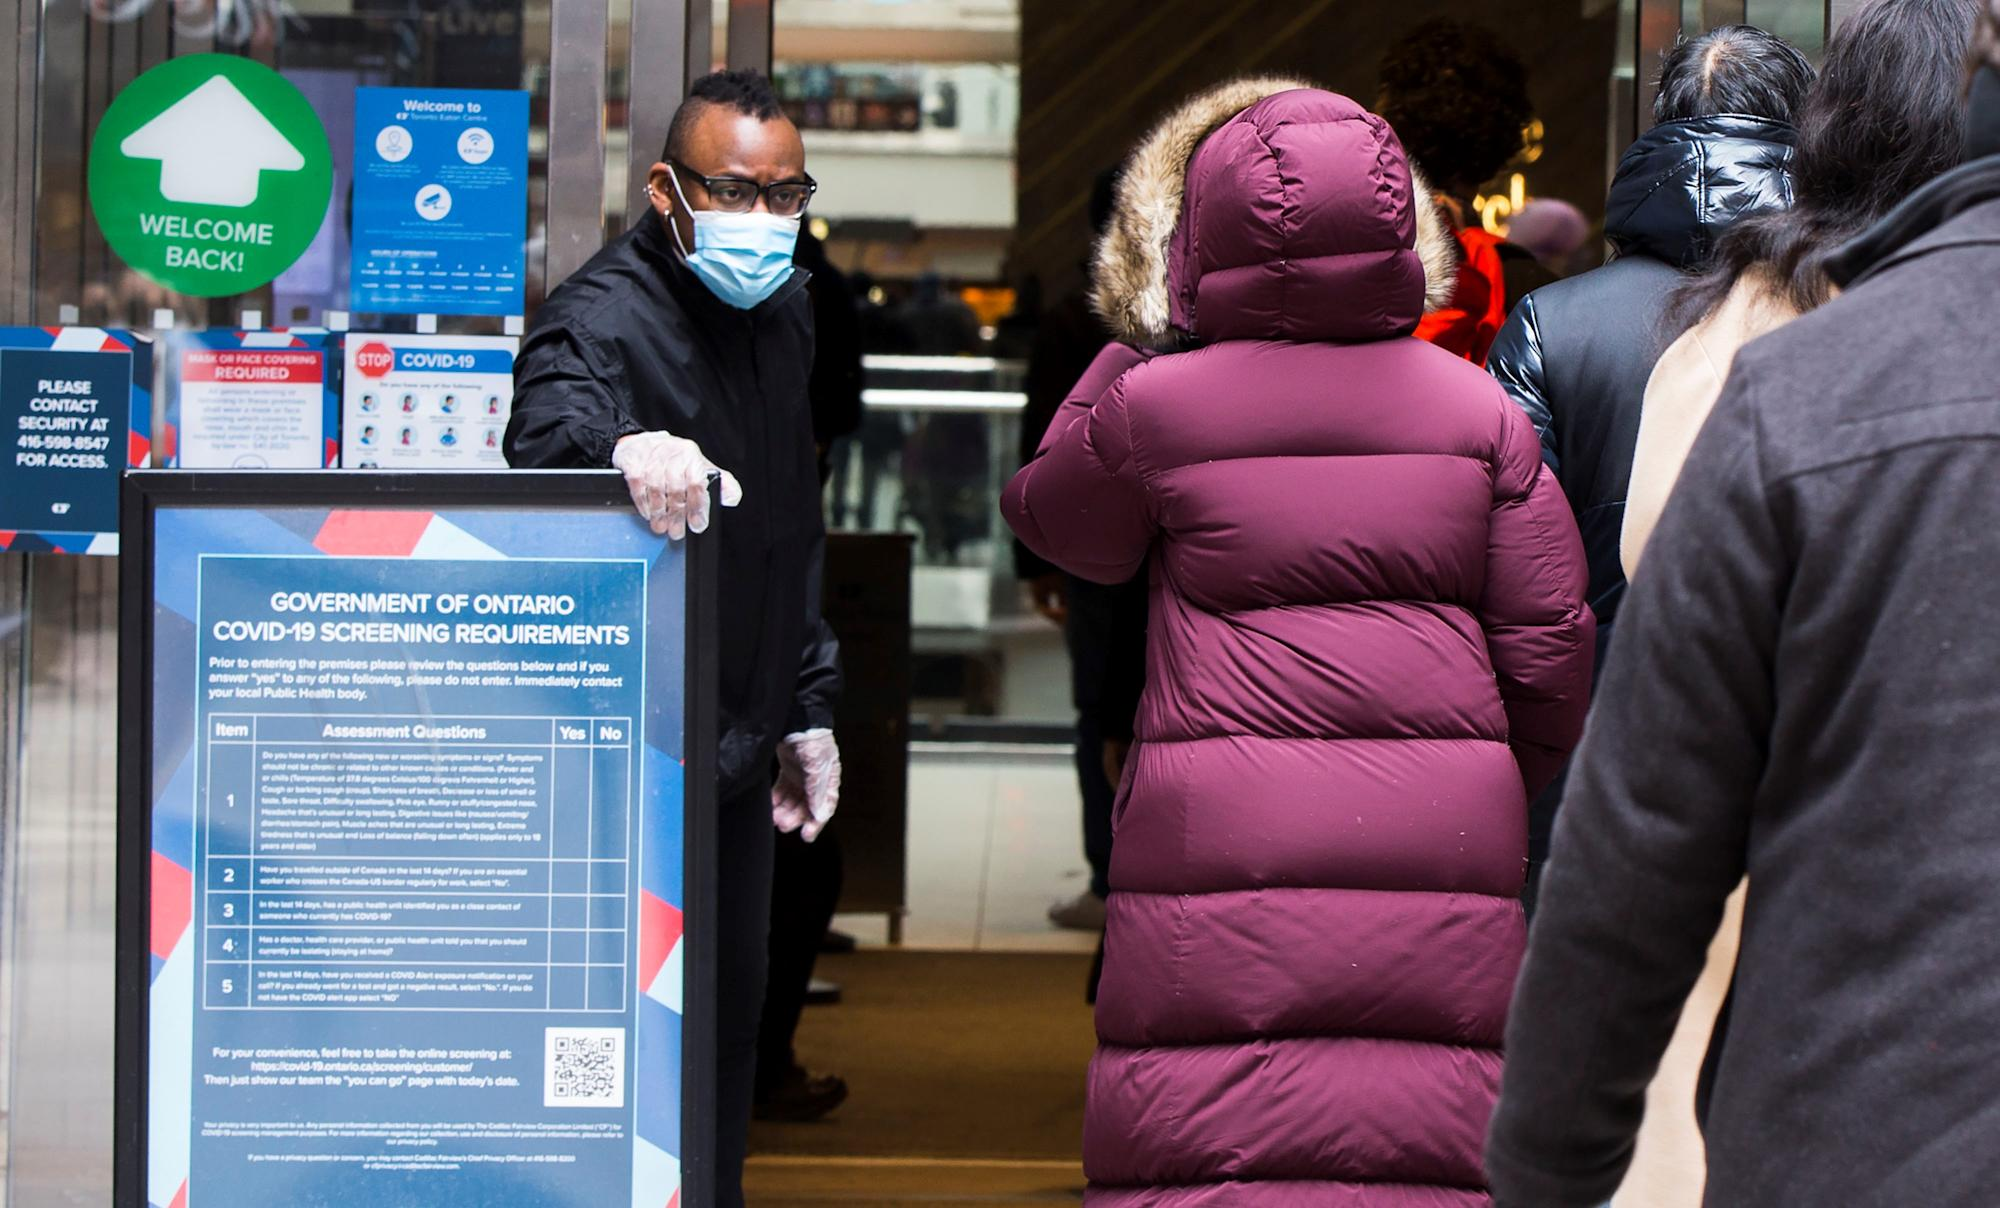 COVID-19 end is near: Canada finally has a 'ticket out of the pandemic', one year after virus shut the country down - Yahoo News